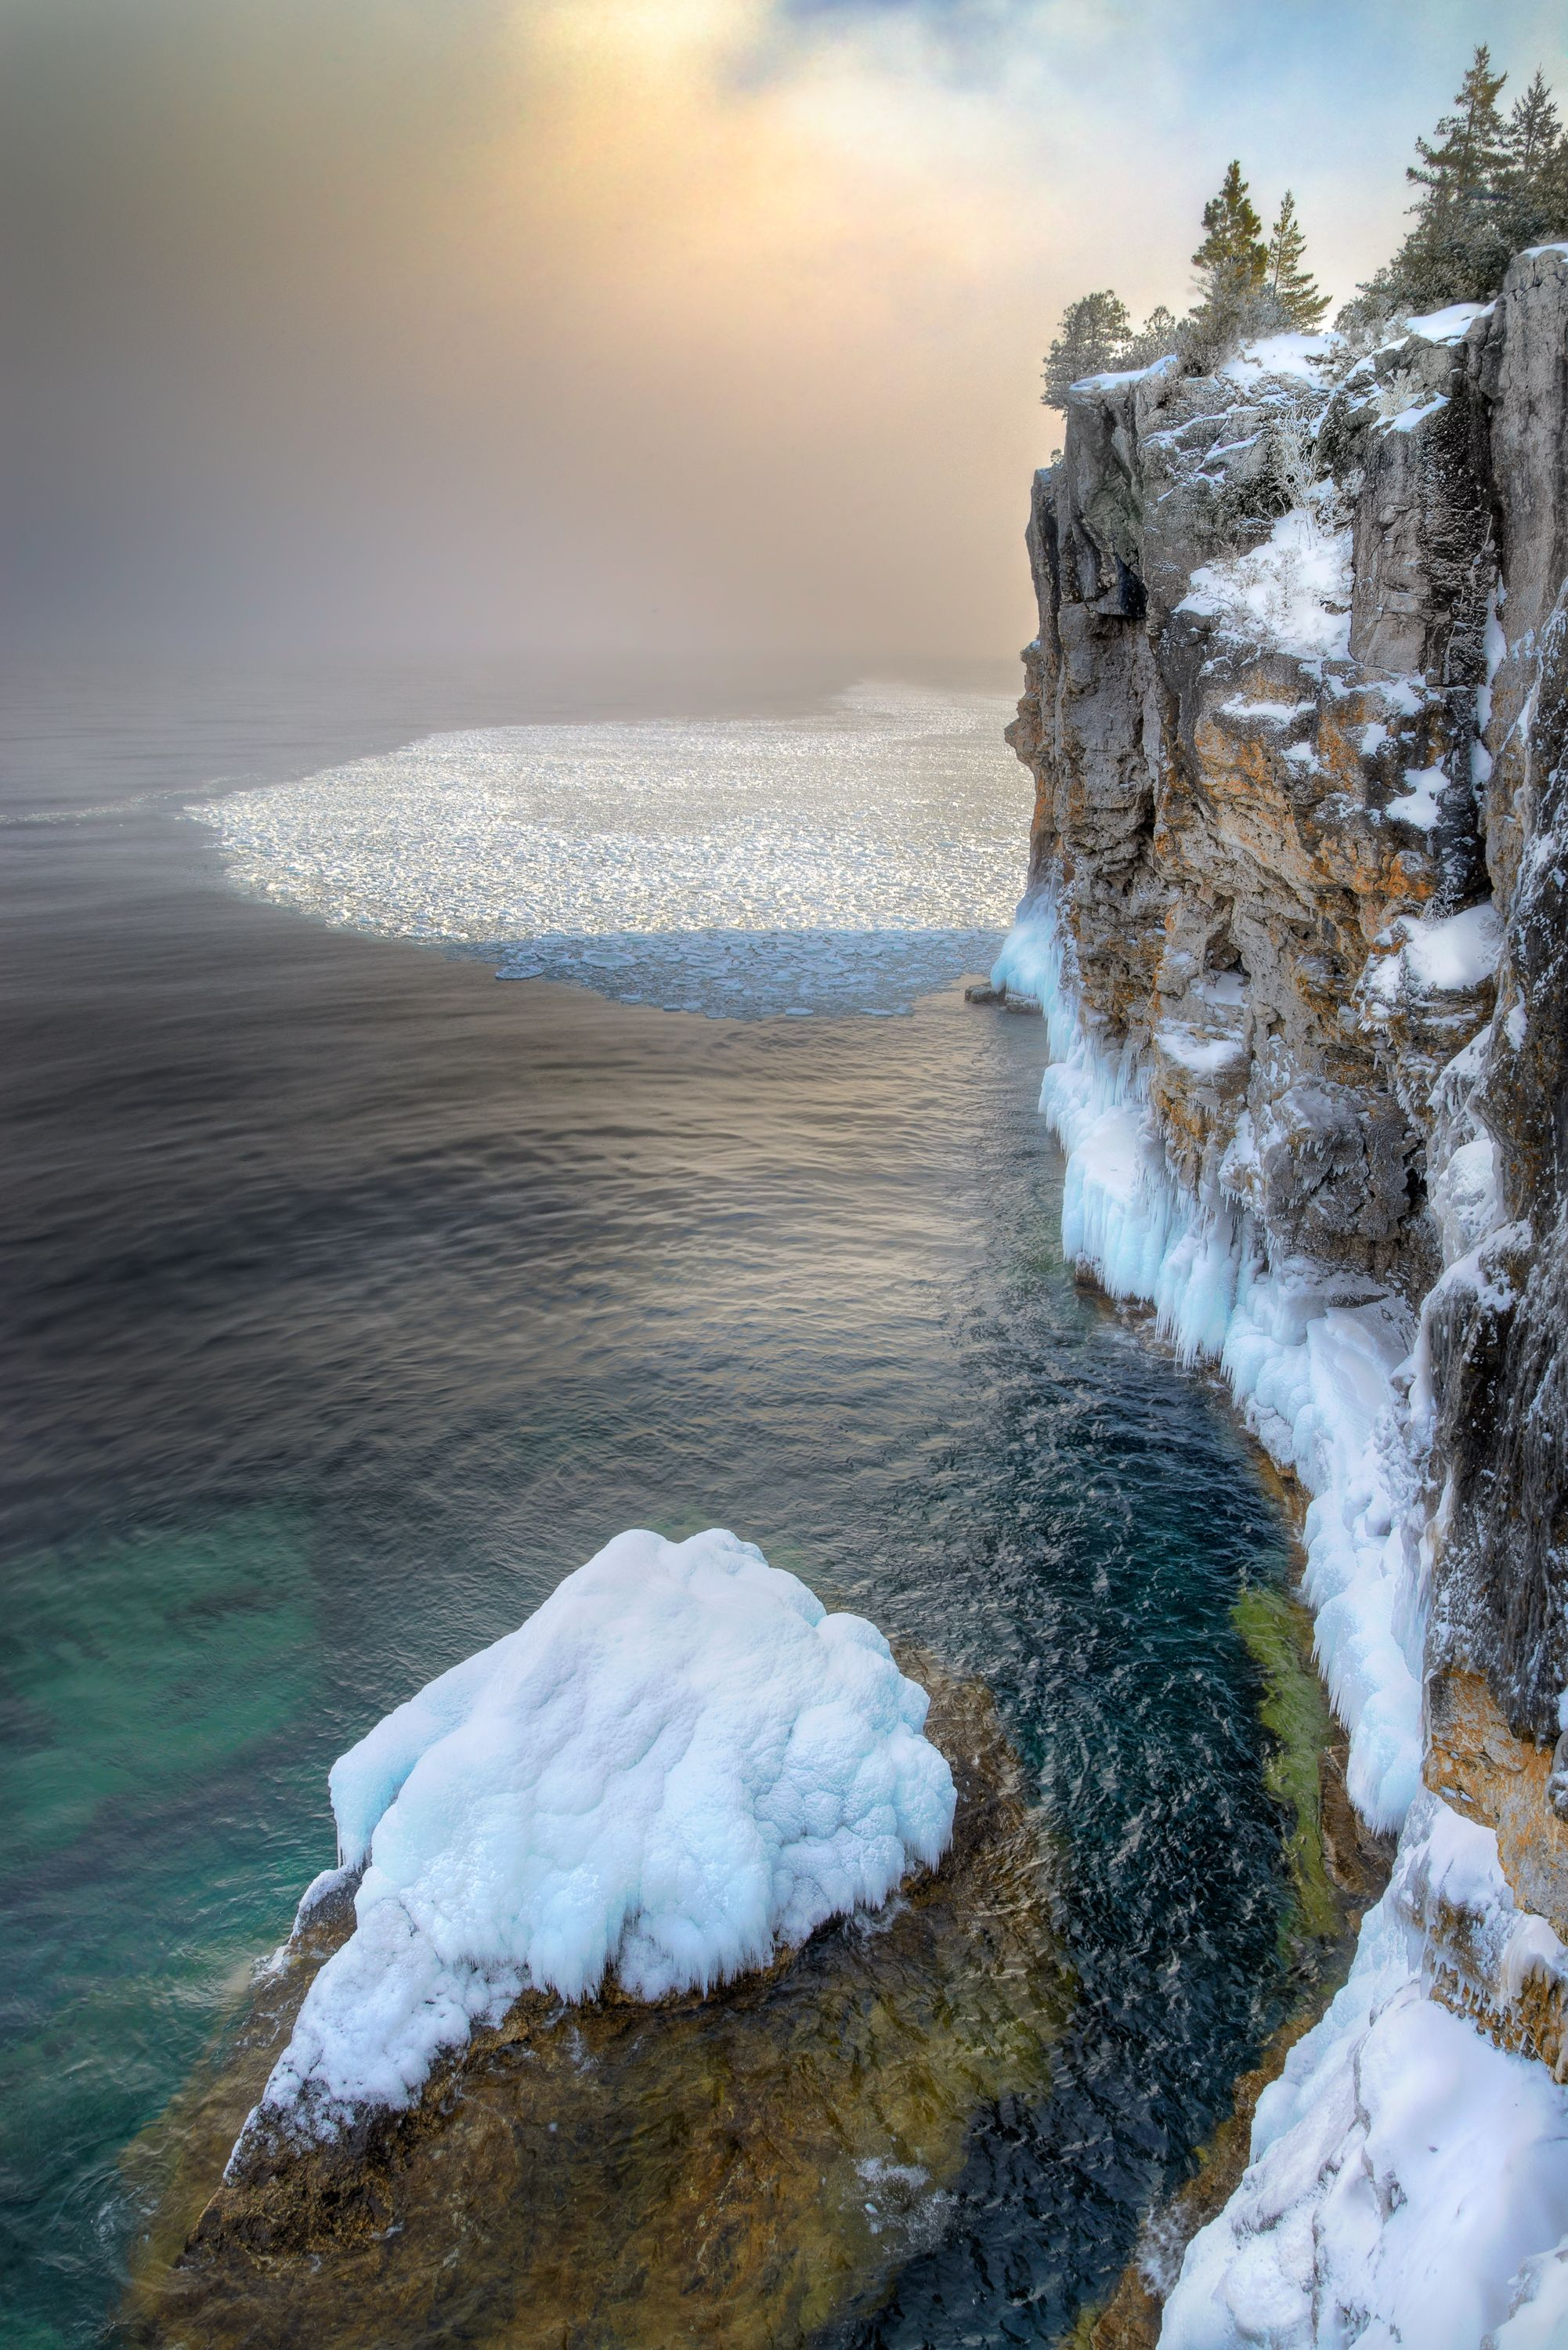 Bruce Peninsula by Ron Clifford, a photographer based in Toronto, ON